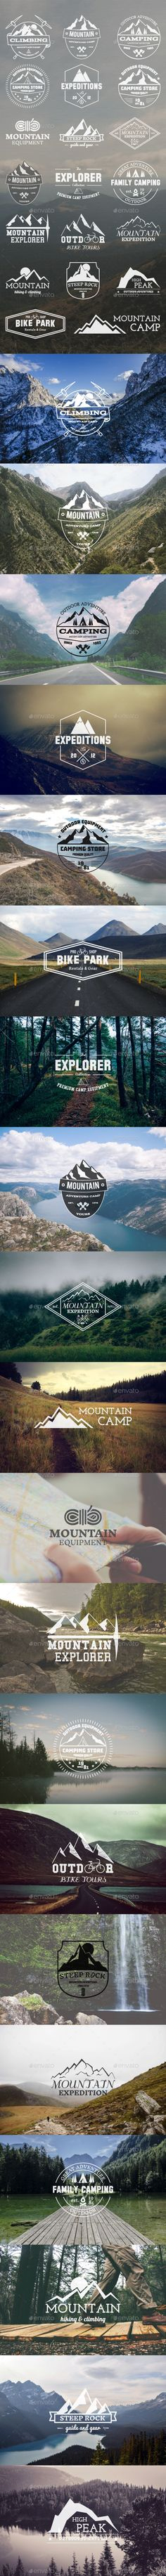 20 Adventure Badges & Logo - Badges & Stickers Web Elements